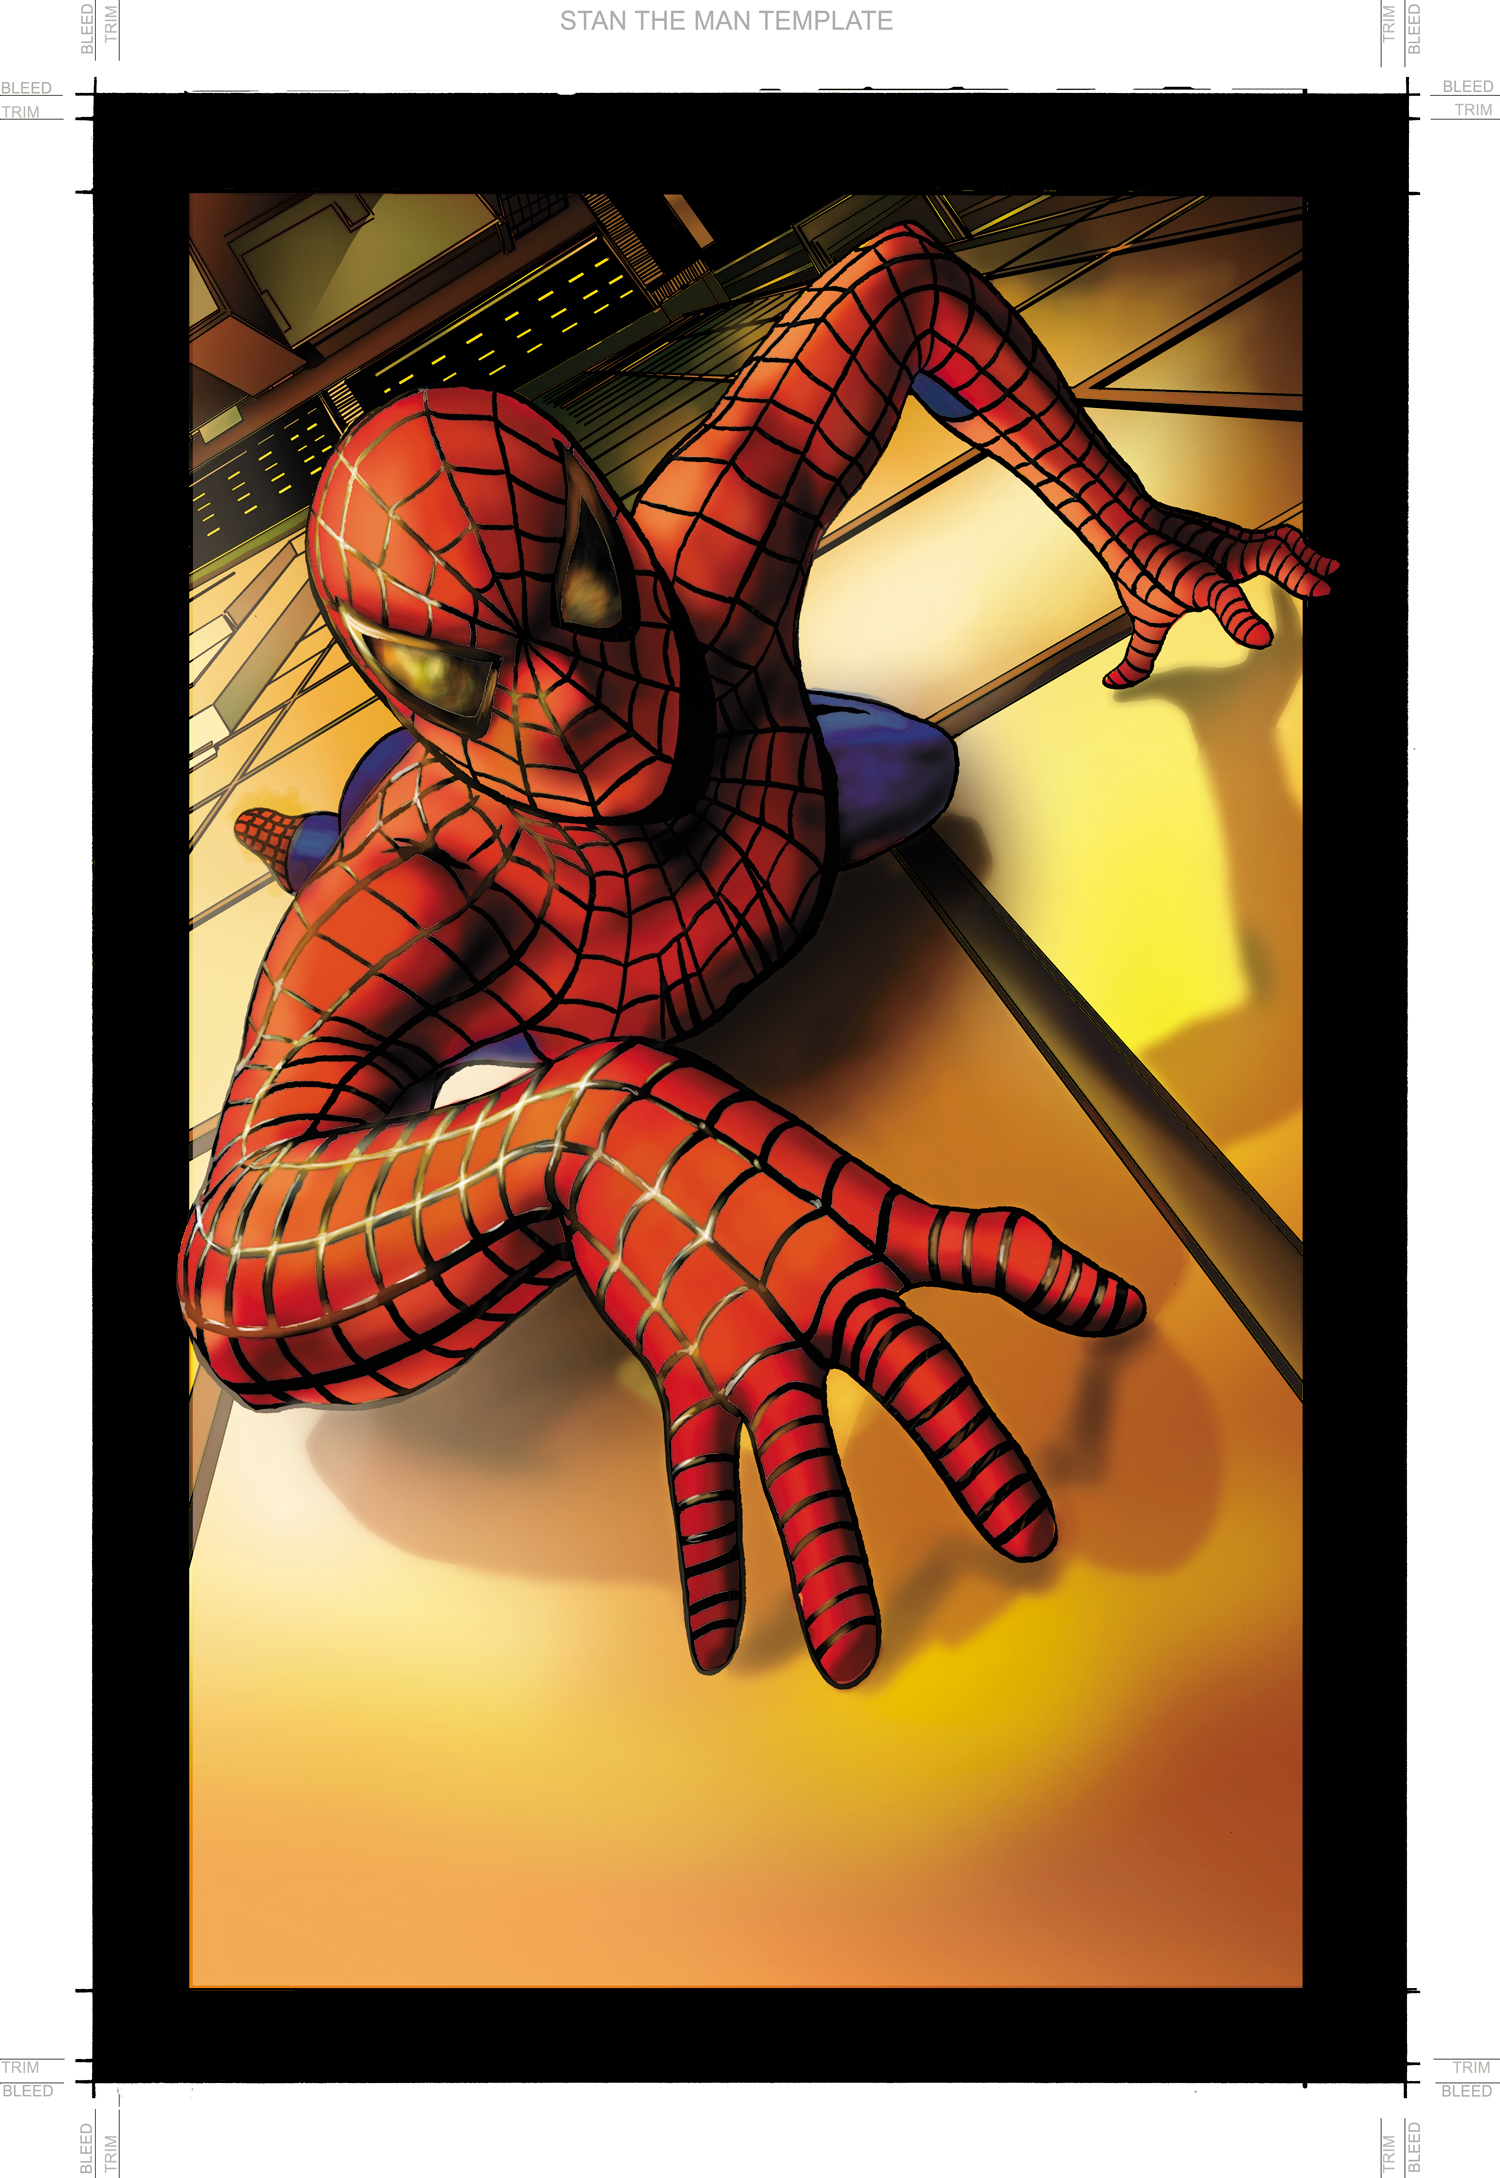 Spider-man poster page